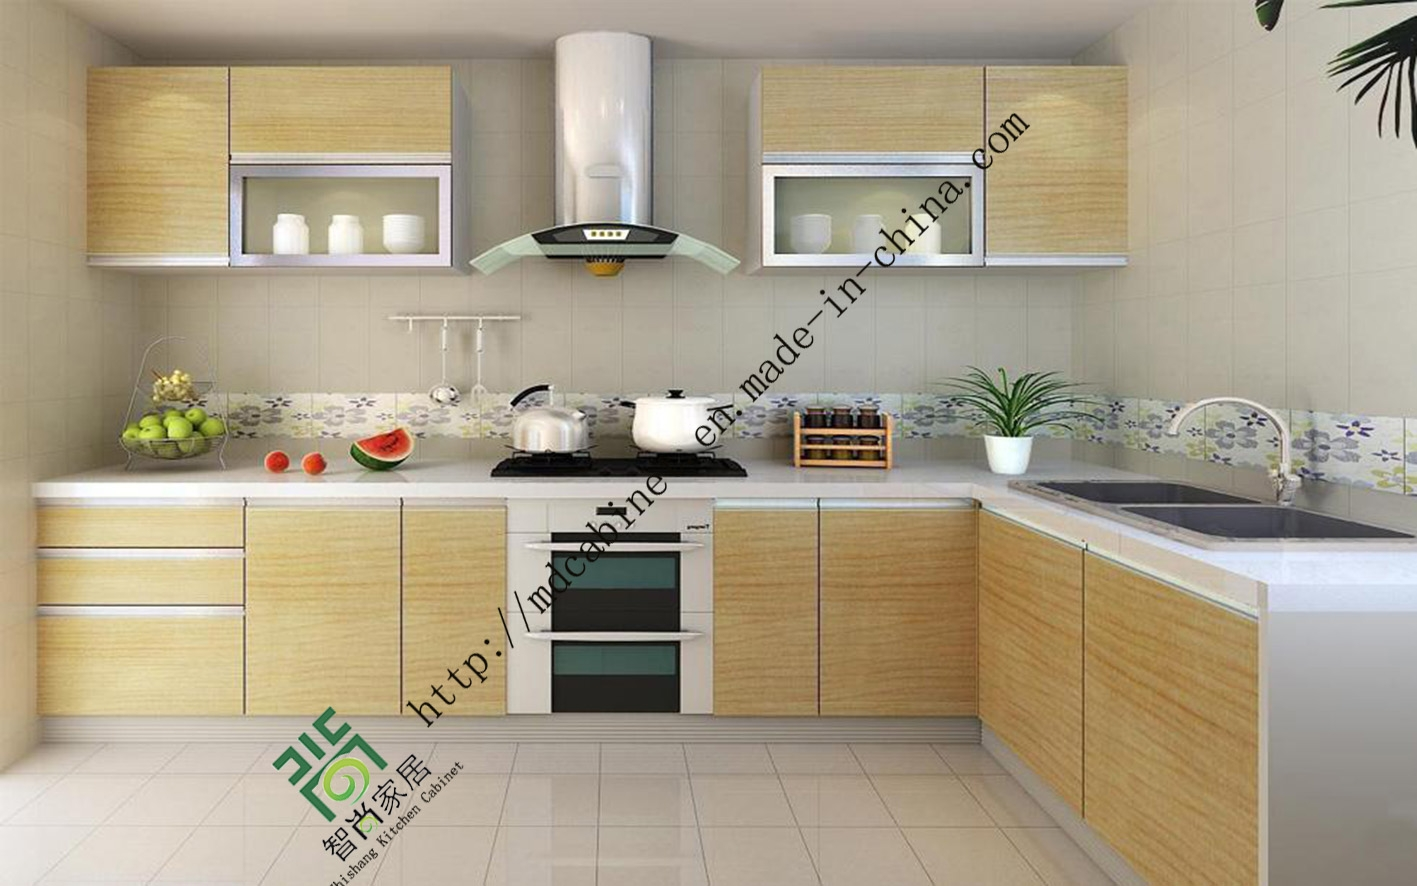 New Designs For Kitchen Cabinets